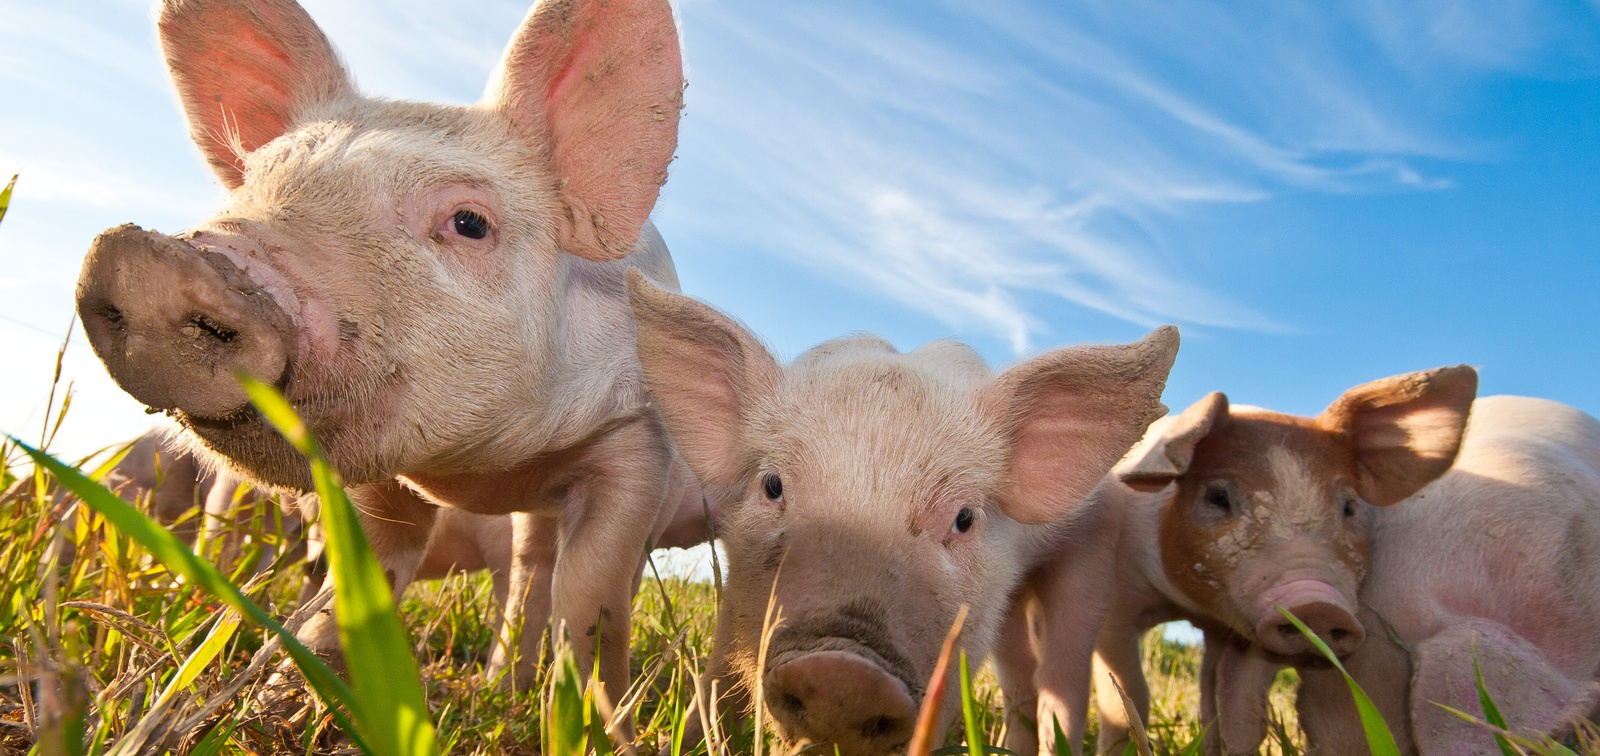 DOJ clears pork industry's plan to collaborate on euthanizing hogs